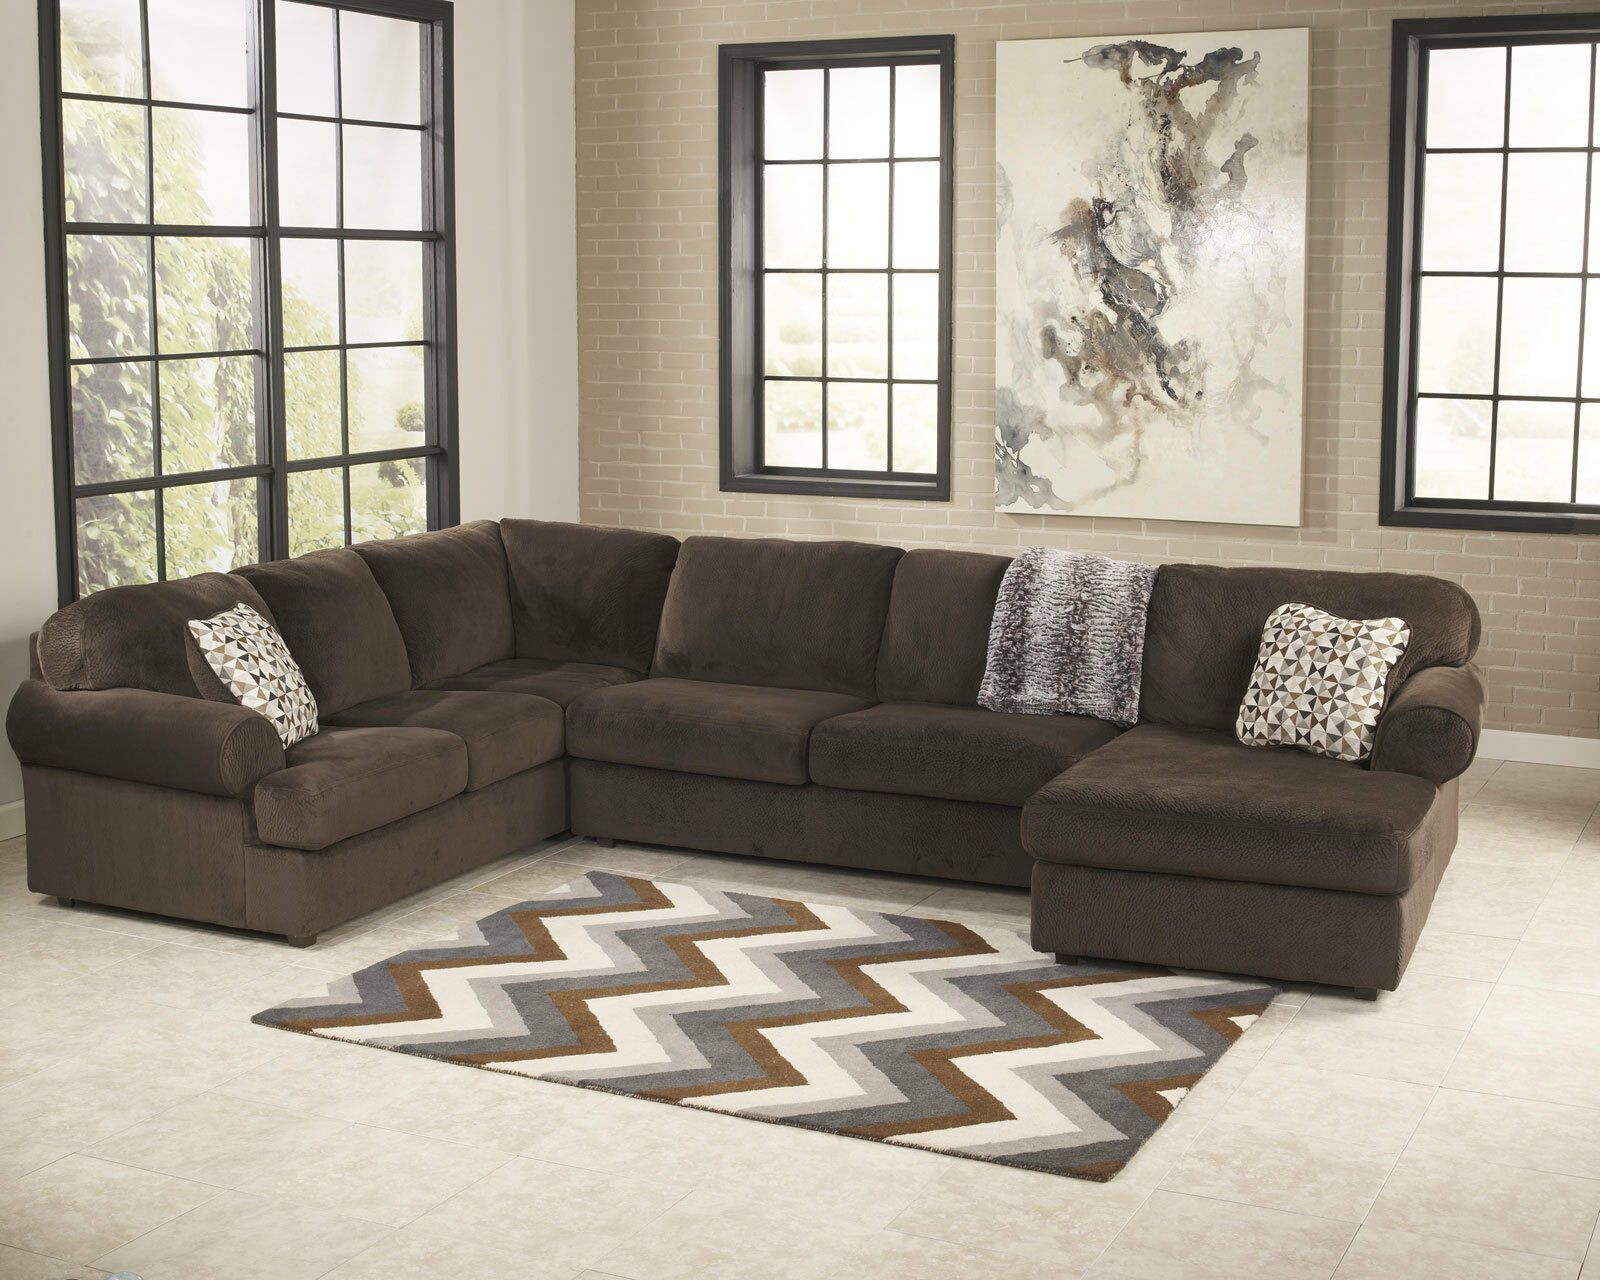 Large Contemporary Brown Microfiber Living Family Room Set Sofa Sectional Ig2y Microfiber Co In 2020 Sectional Sofa Living Room Sectional Sectional Sofa With Chaise